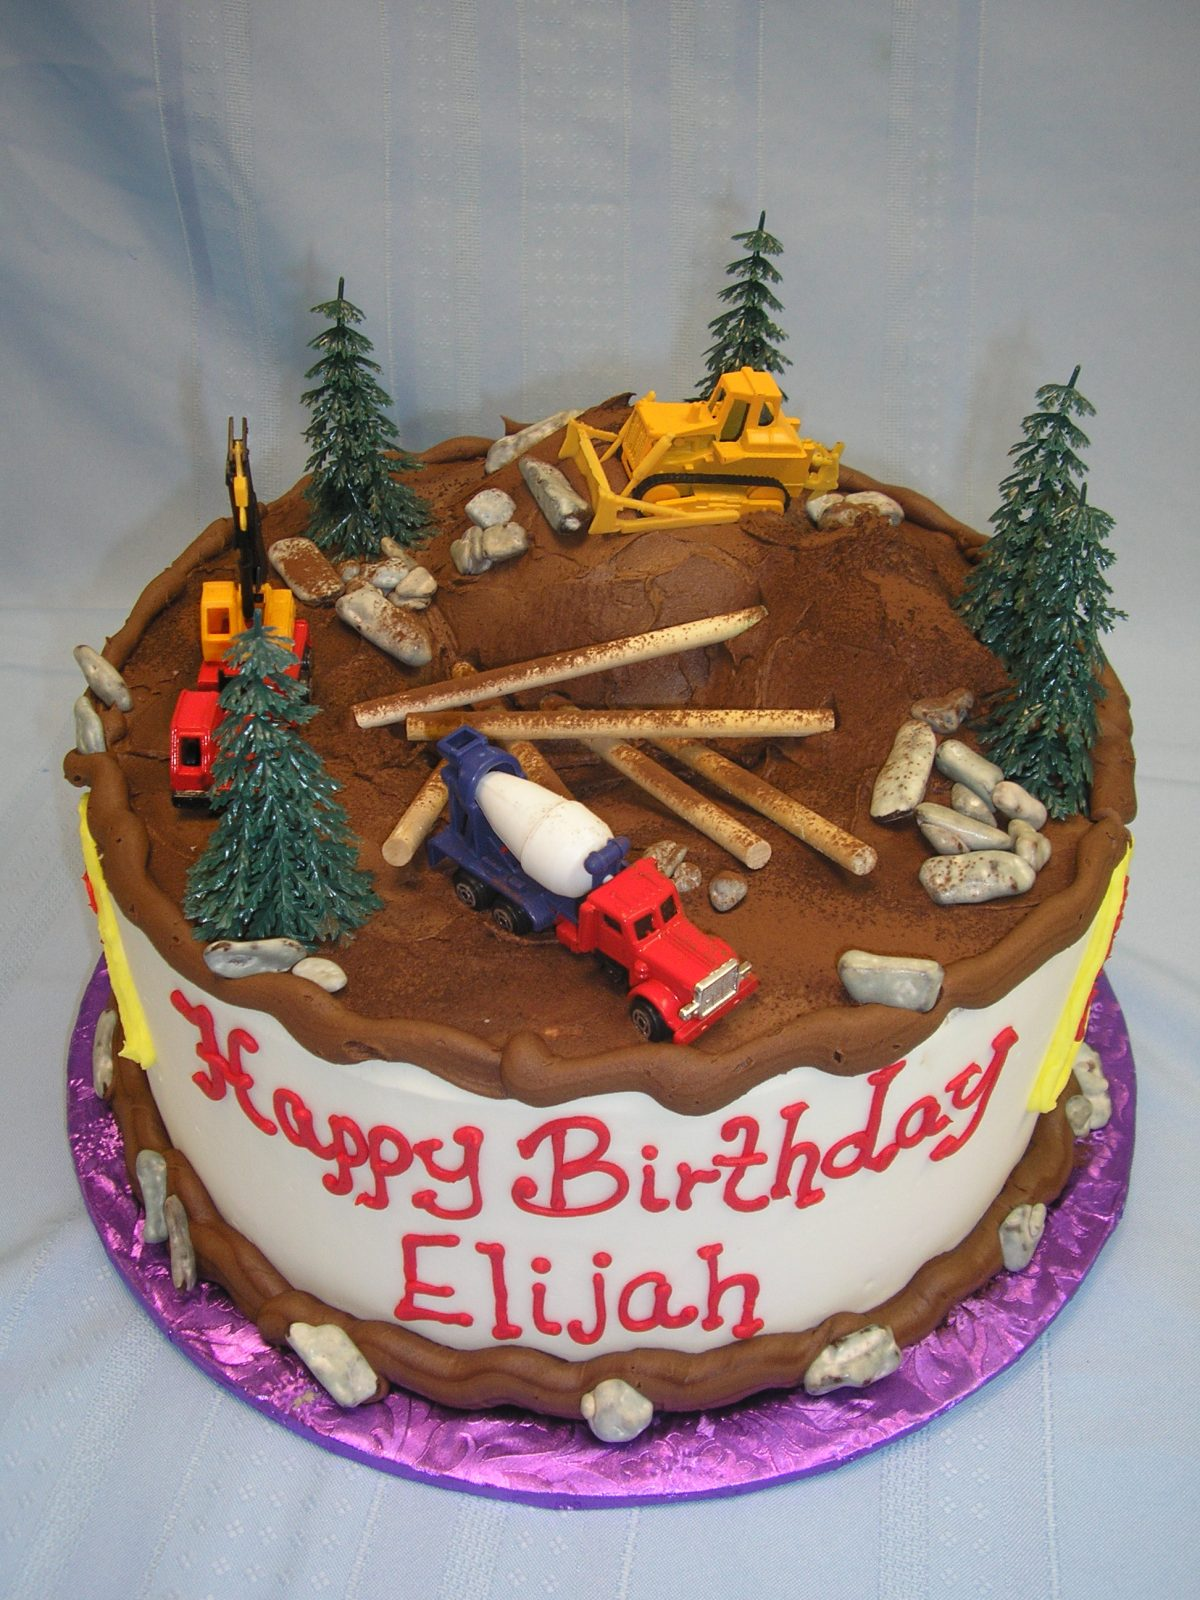 construction cake, construction equipment cake